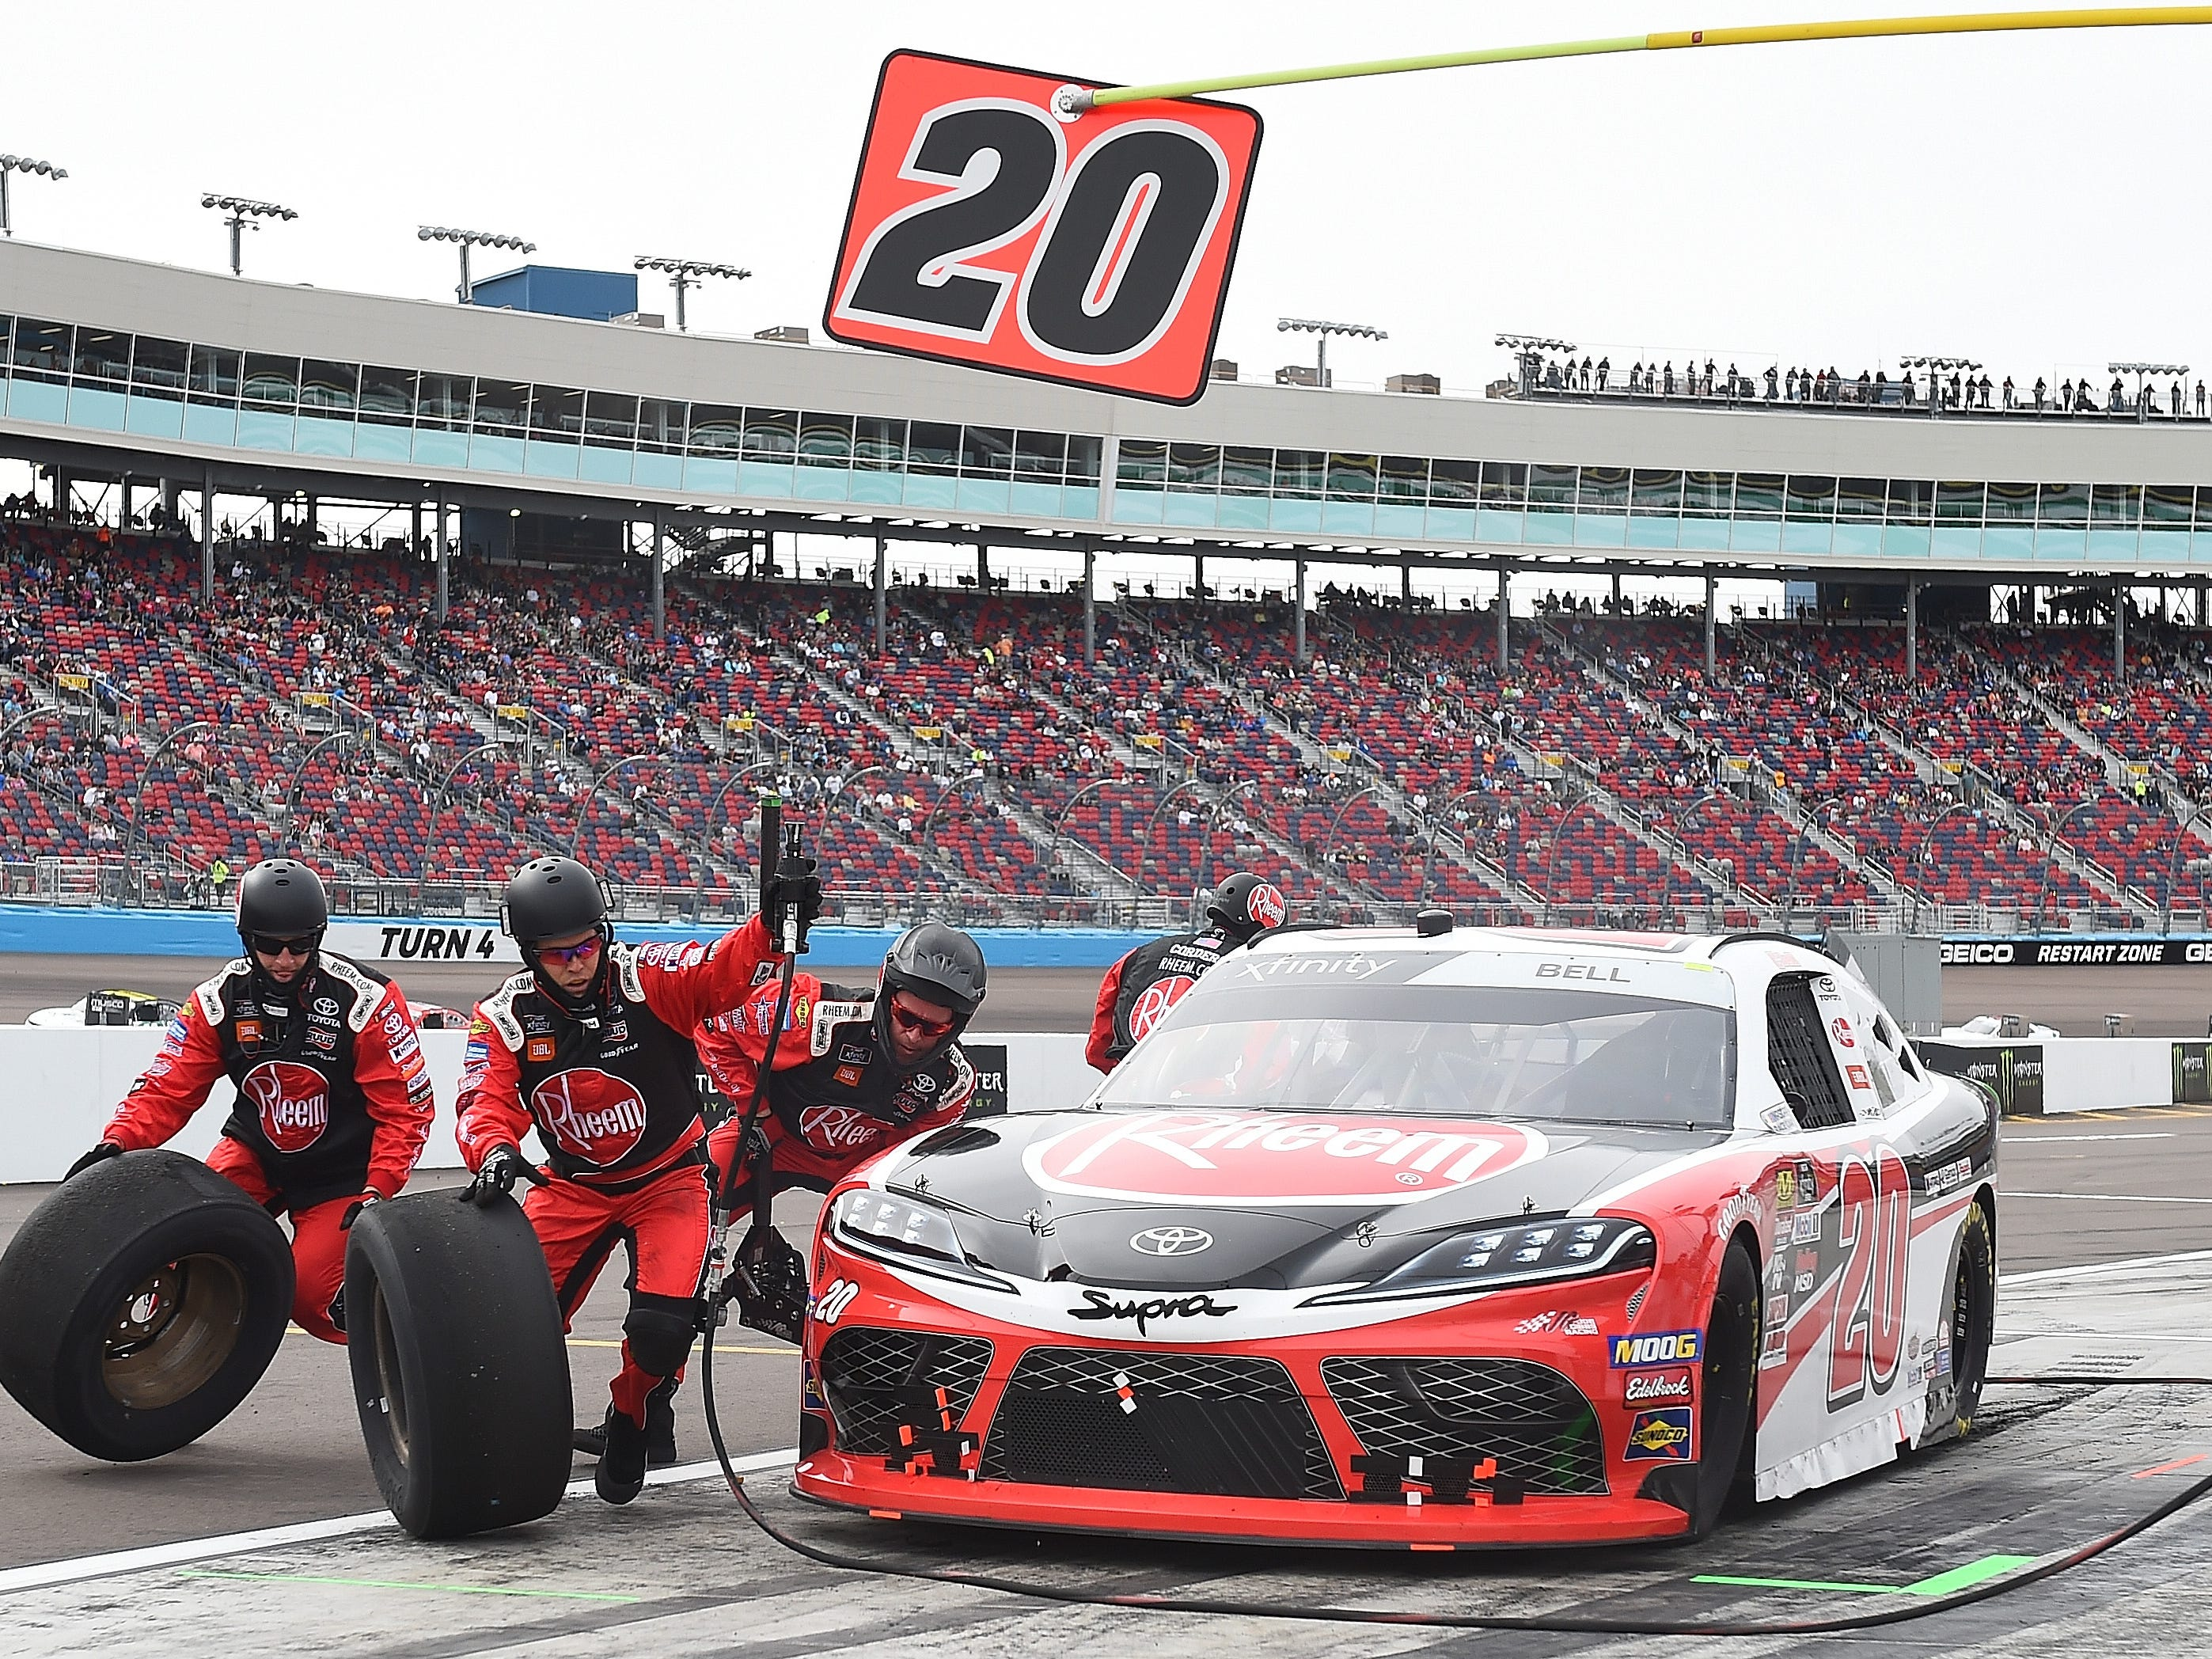 AVONDALE, AZ - MARCH 09:  Christopher Bell, driver of the #20 Rheem Toyota, pits during the NASCAR Xfinity Series iK9 Service Dog 200 at ISM Raceway on March 9, 2019 in Avondale, Arizona.